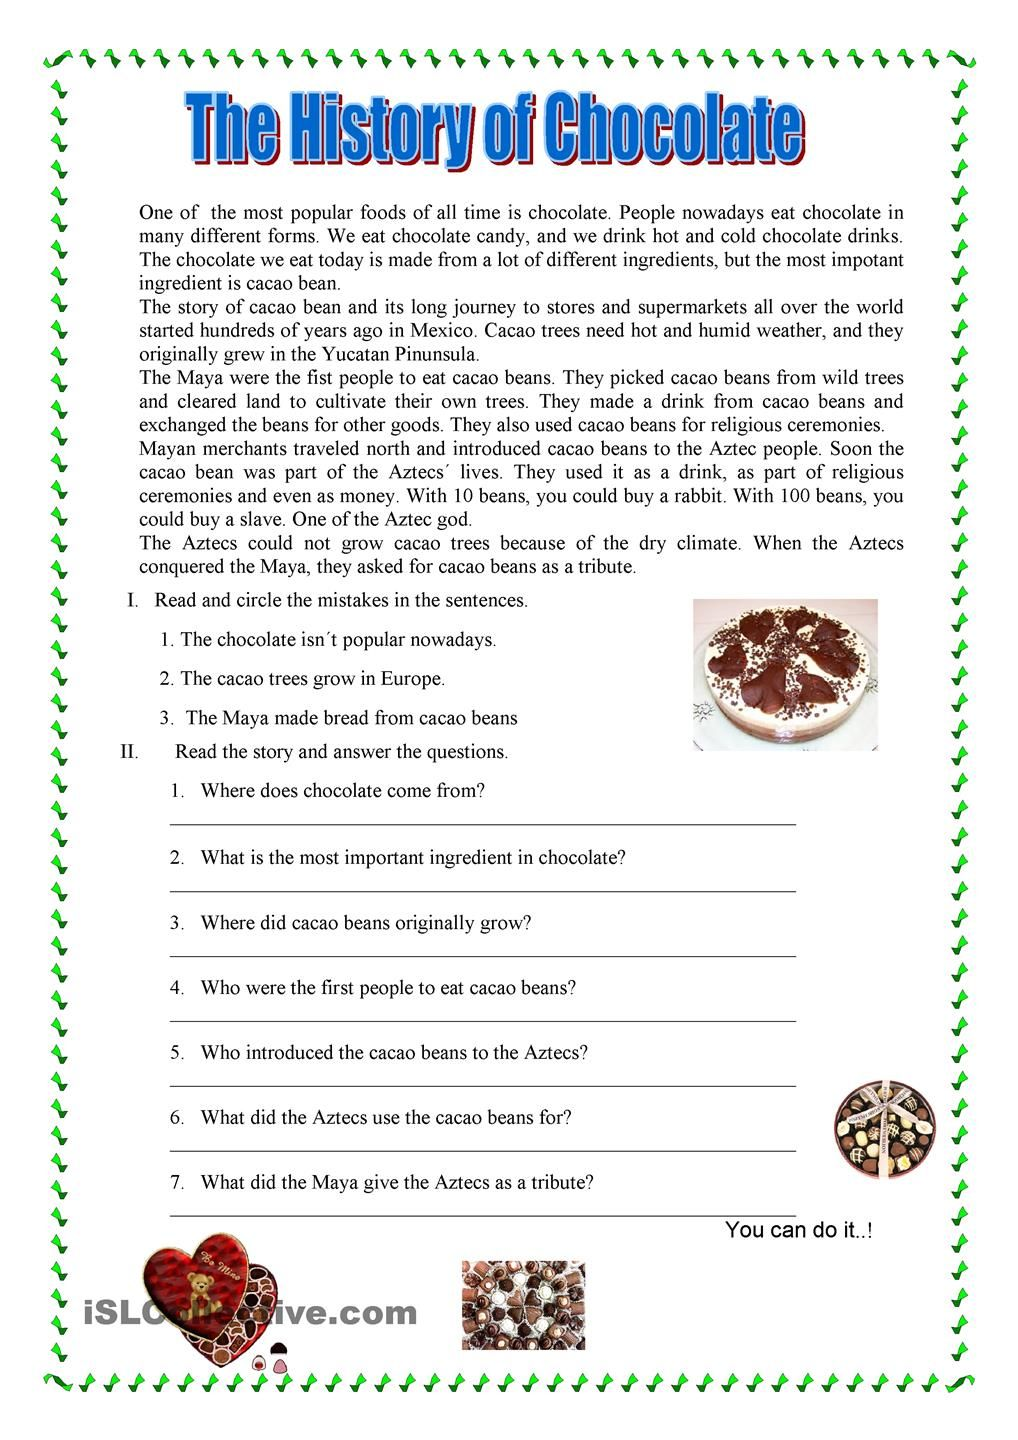 Reading Comprehension worksheet - Free ESL printable worksheets made by  teachers